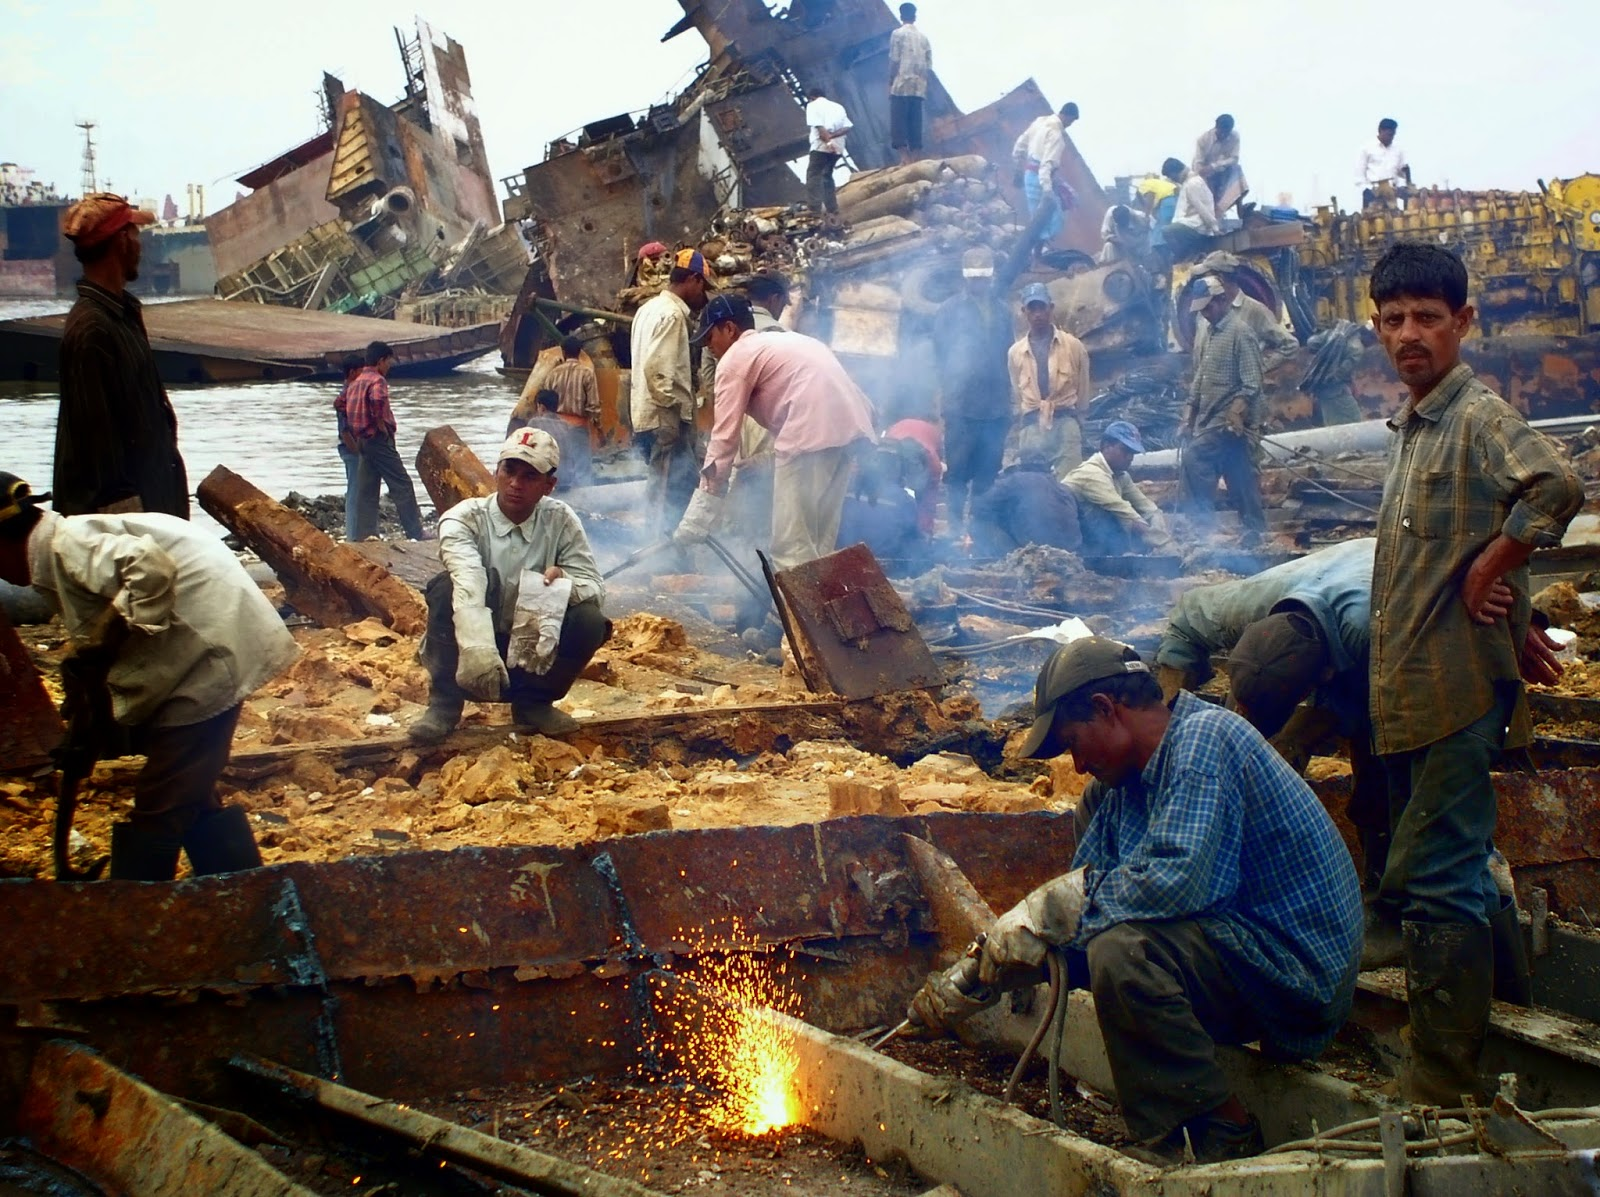 chittagong shipbreaking yards source creative commons